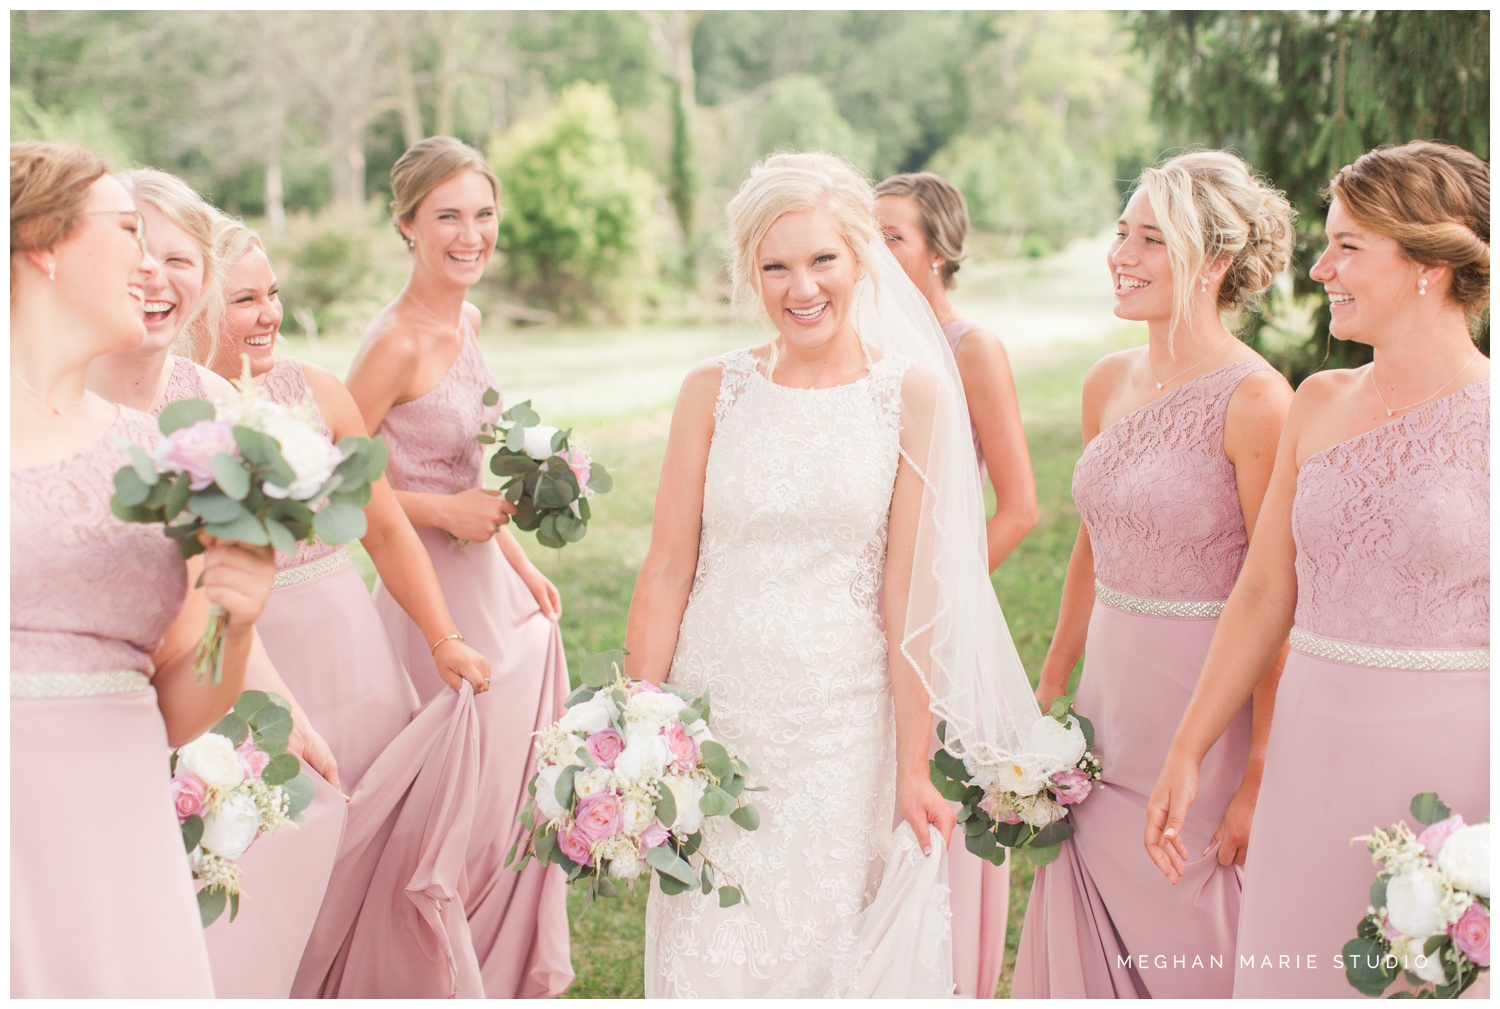 meghan marie studio wedding photographer ohio troy dayton columbus small town rustic rural farm cows vintage mauves dusty rose pinks whites ivorys grays f1 sound paper lanterns pearls_0644.jpg